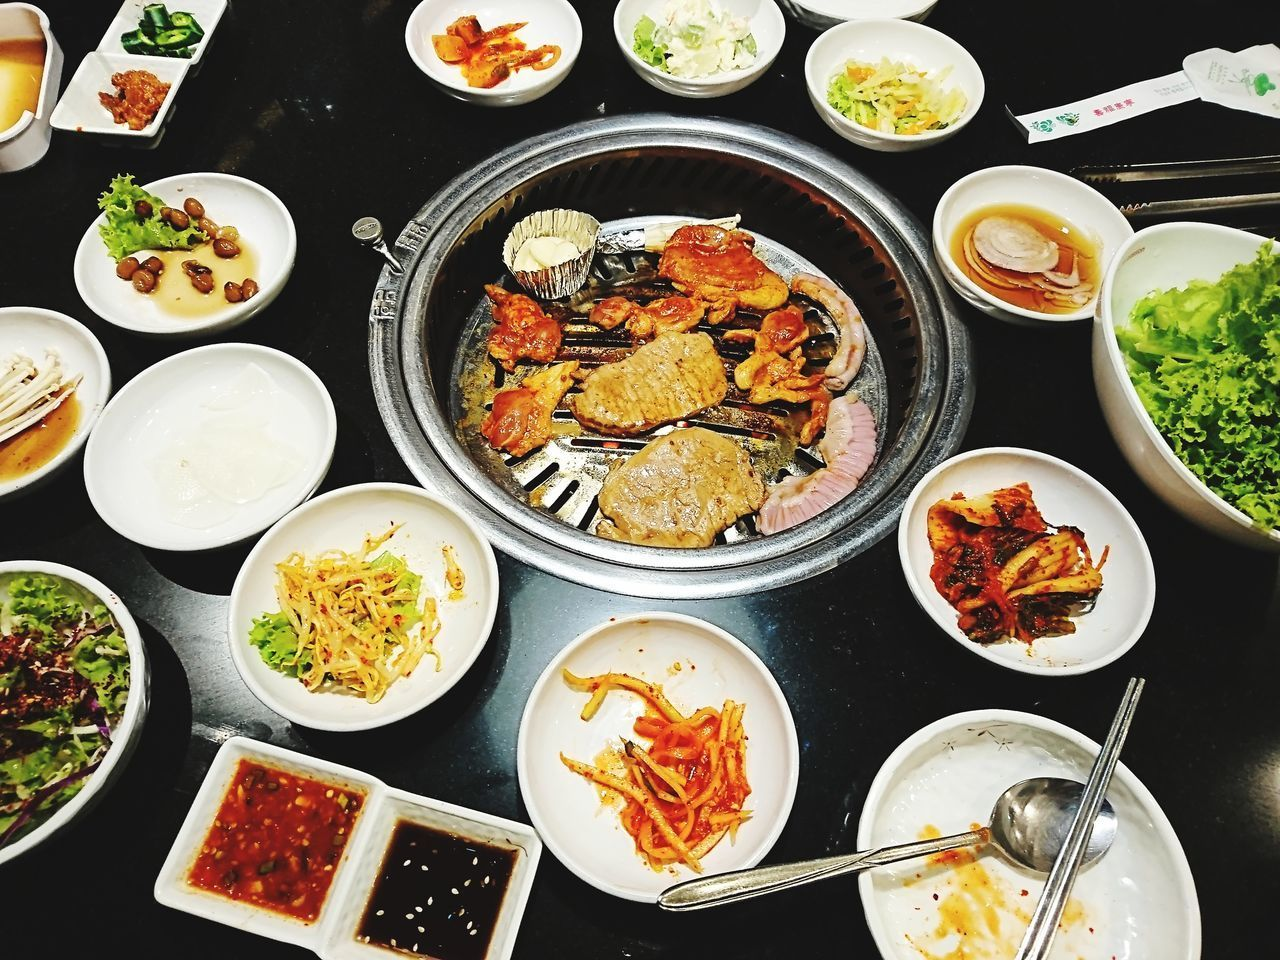 HIGH ANGLE VIEW OF MEAL SERVED IN TRAY